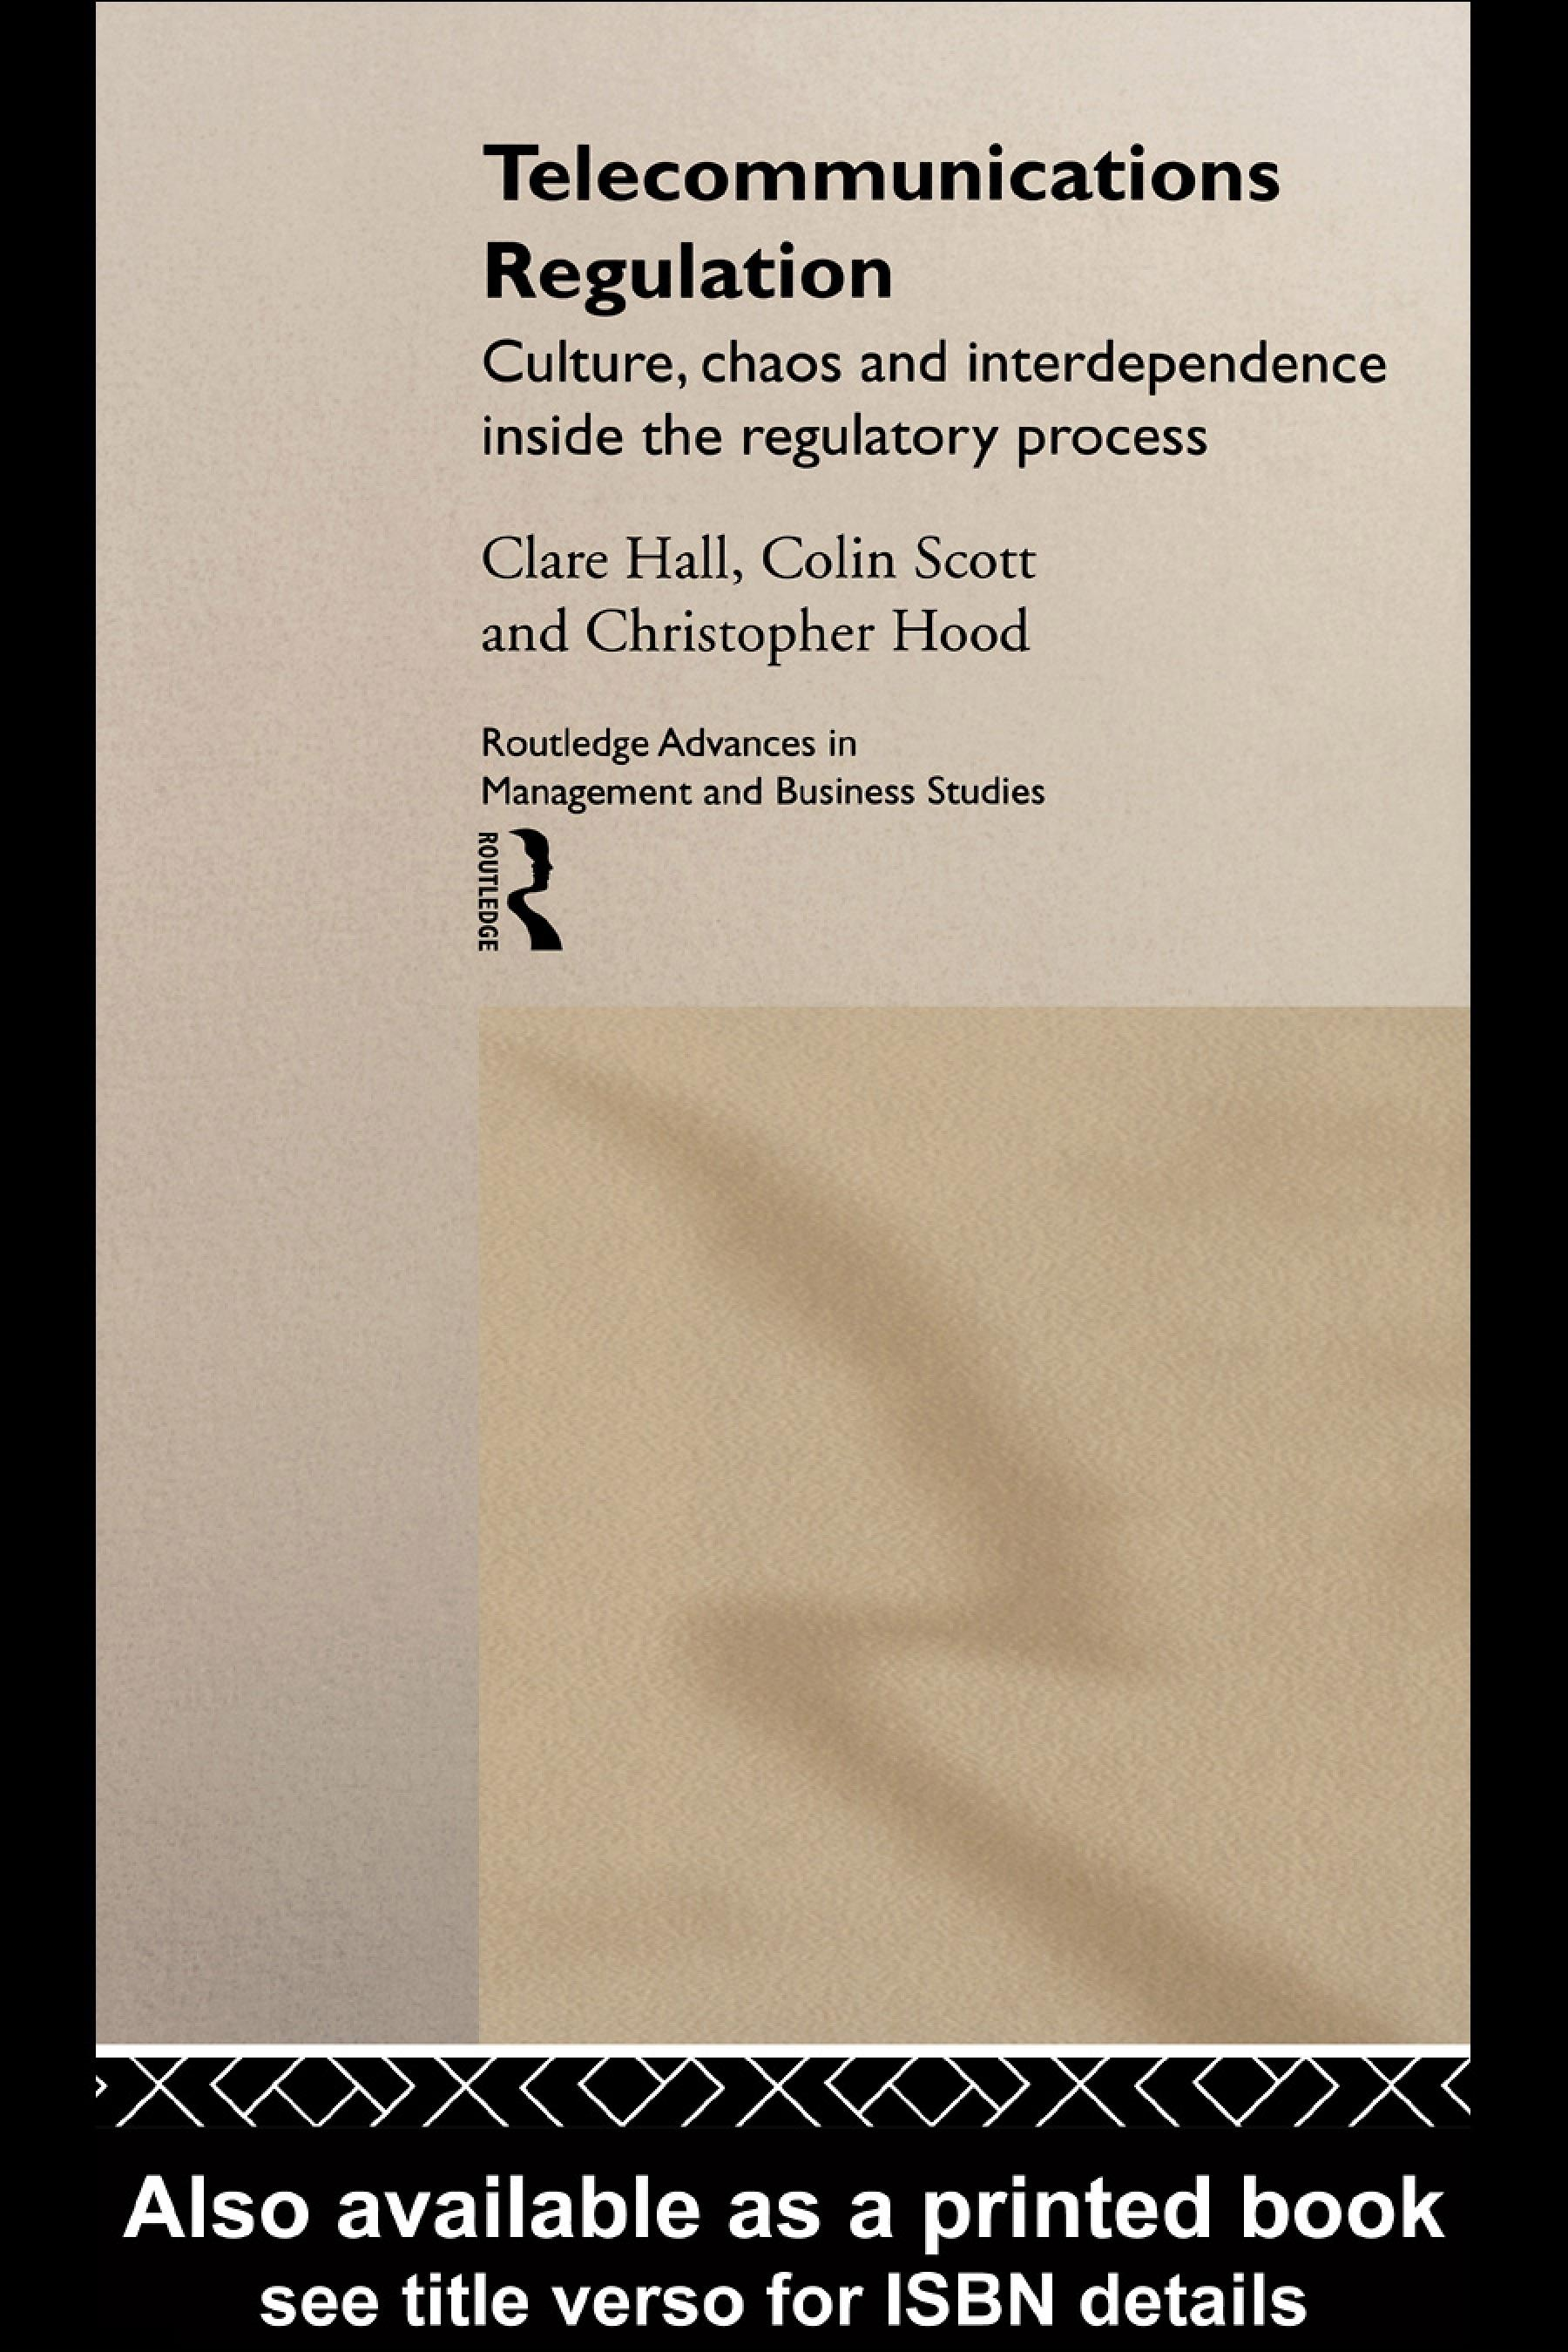 Telecommunications Regulation: Culture, Chaos and Interdependence Inside the Regulatory Process EB9780203984536